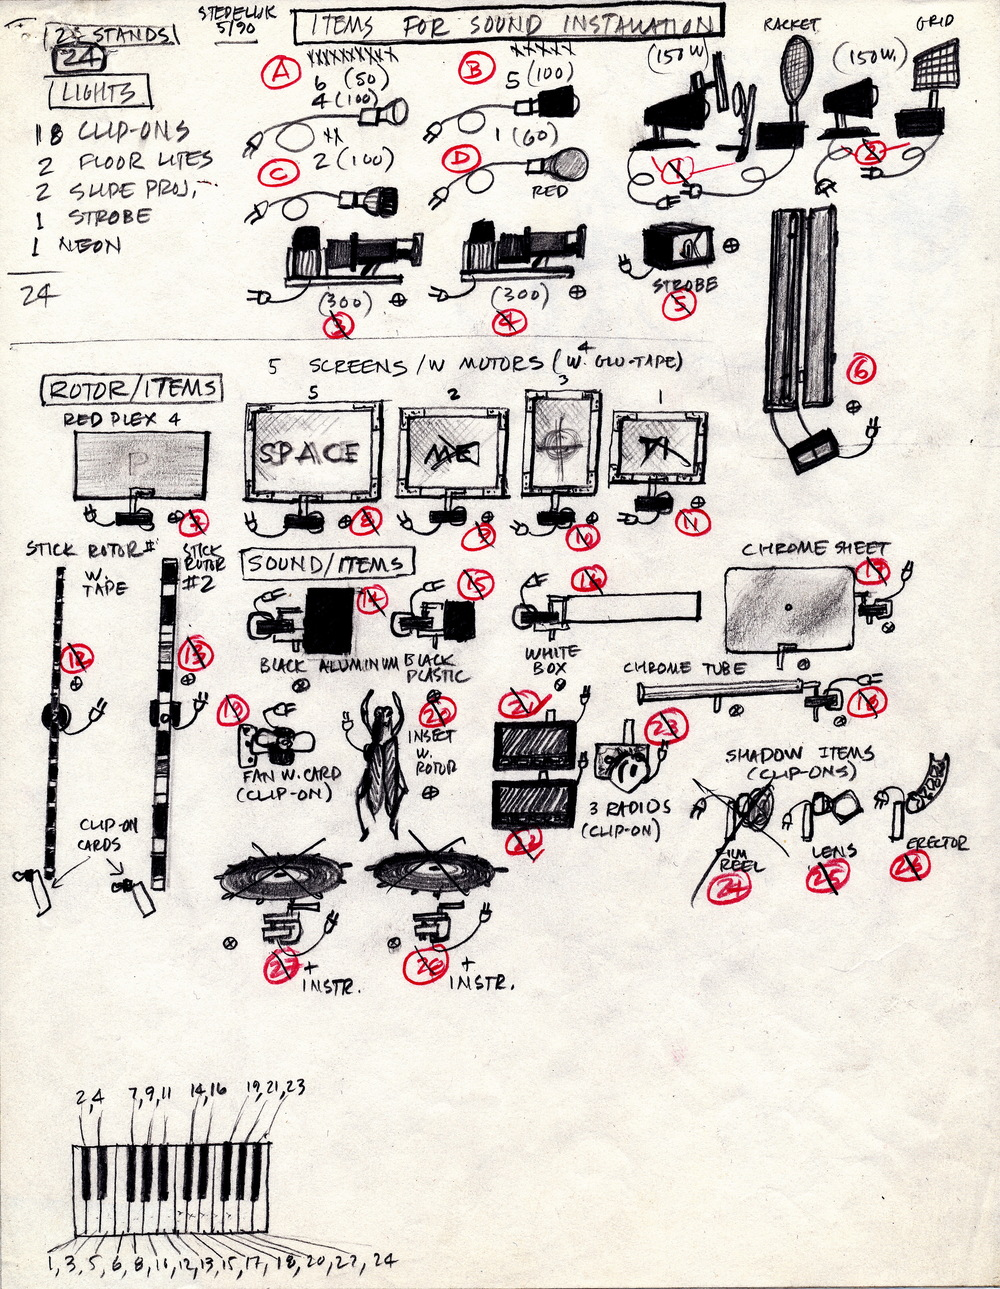 SET-UP DRAWING 12.jpg